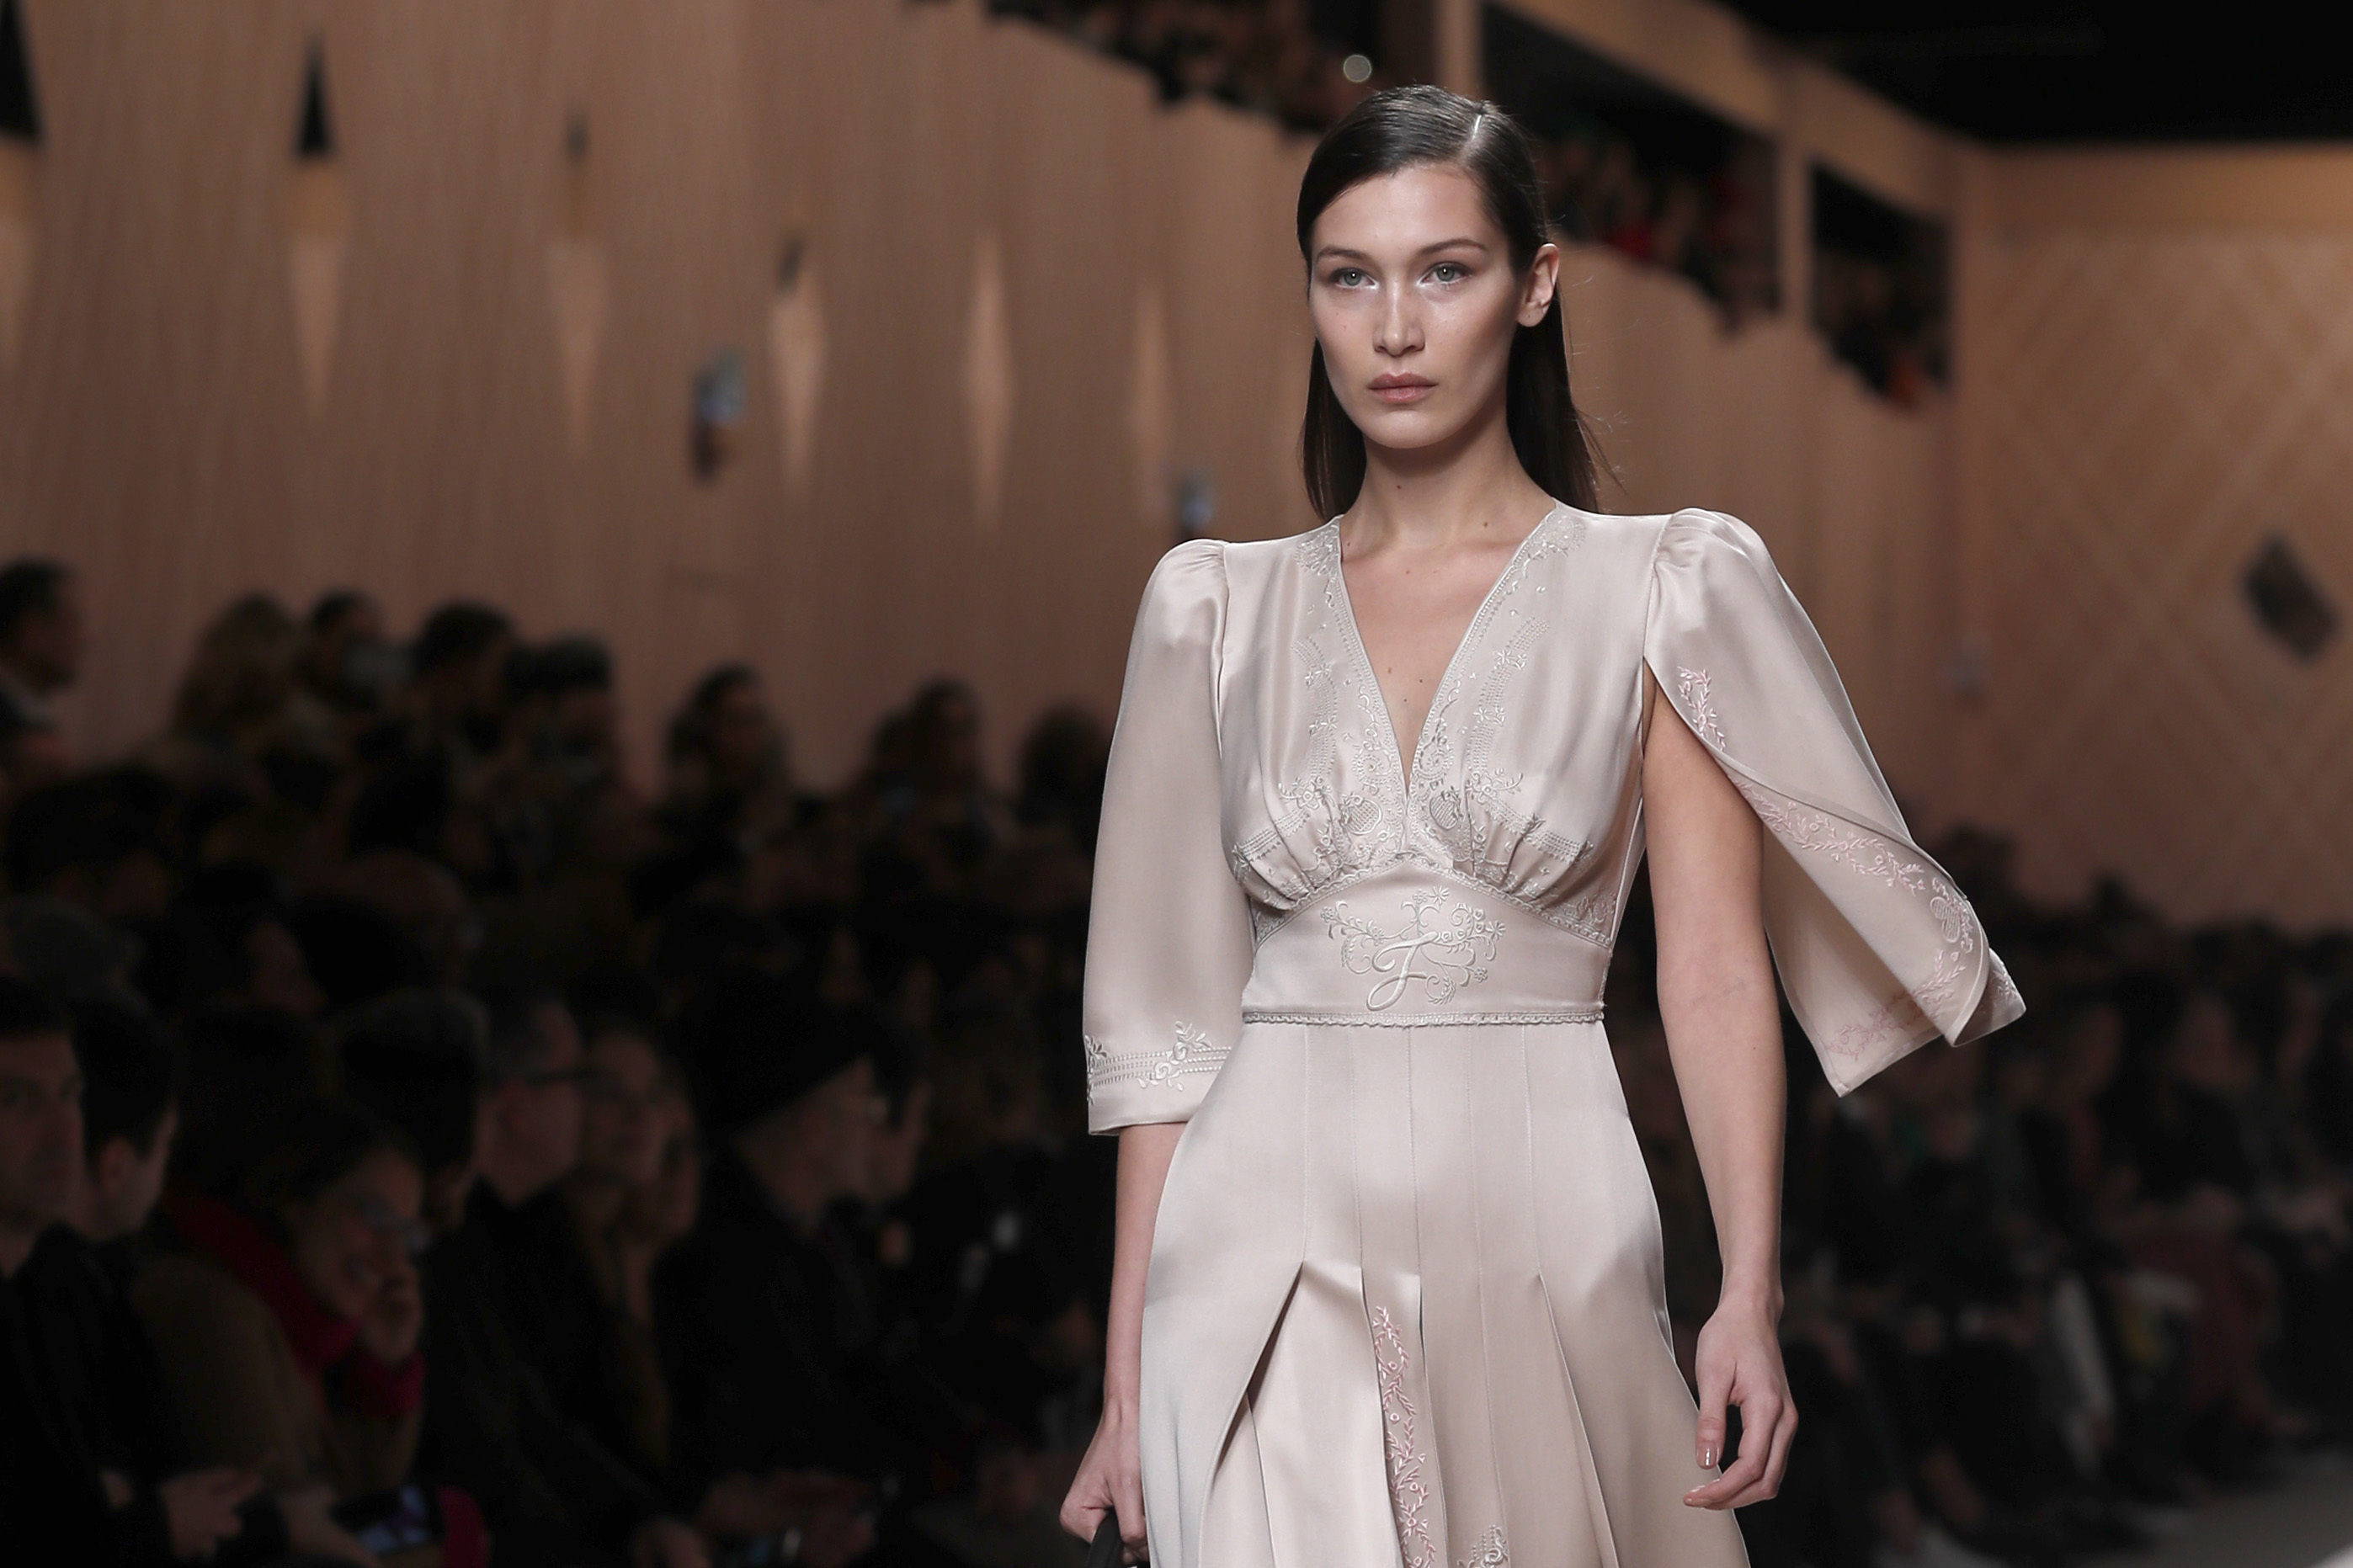 Model Bella Hadid wears a creation as part of the Fendi women's Fall/Winter 2018-2019 collection, presented during the Milan Fashion Week, in Milan, Italy